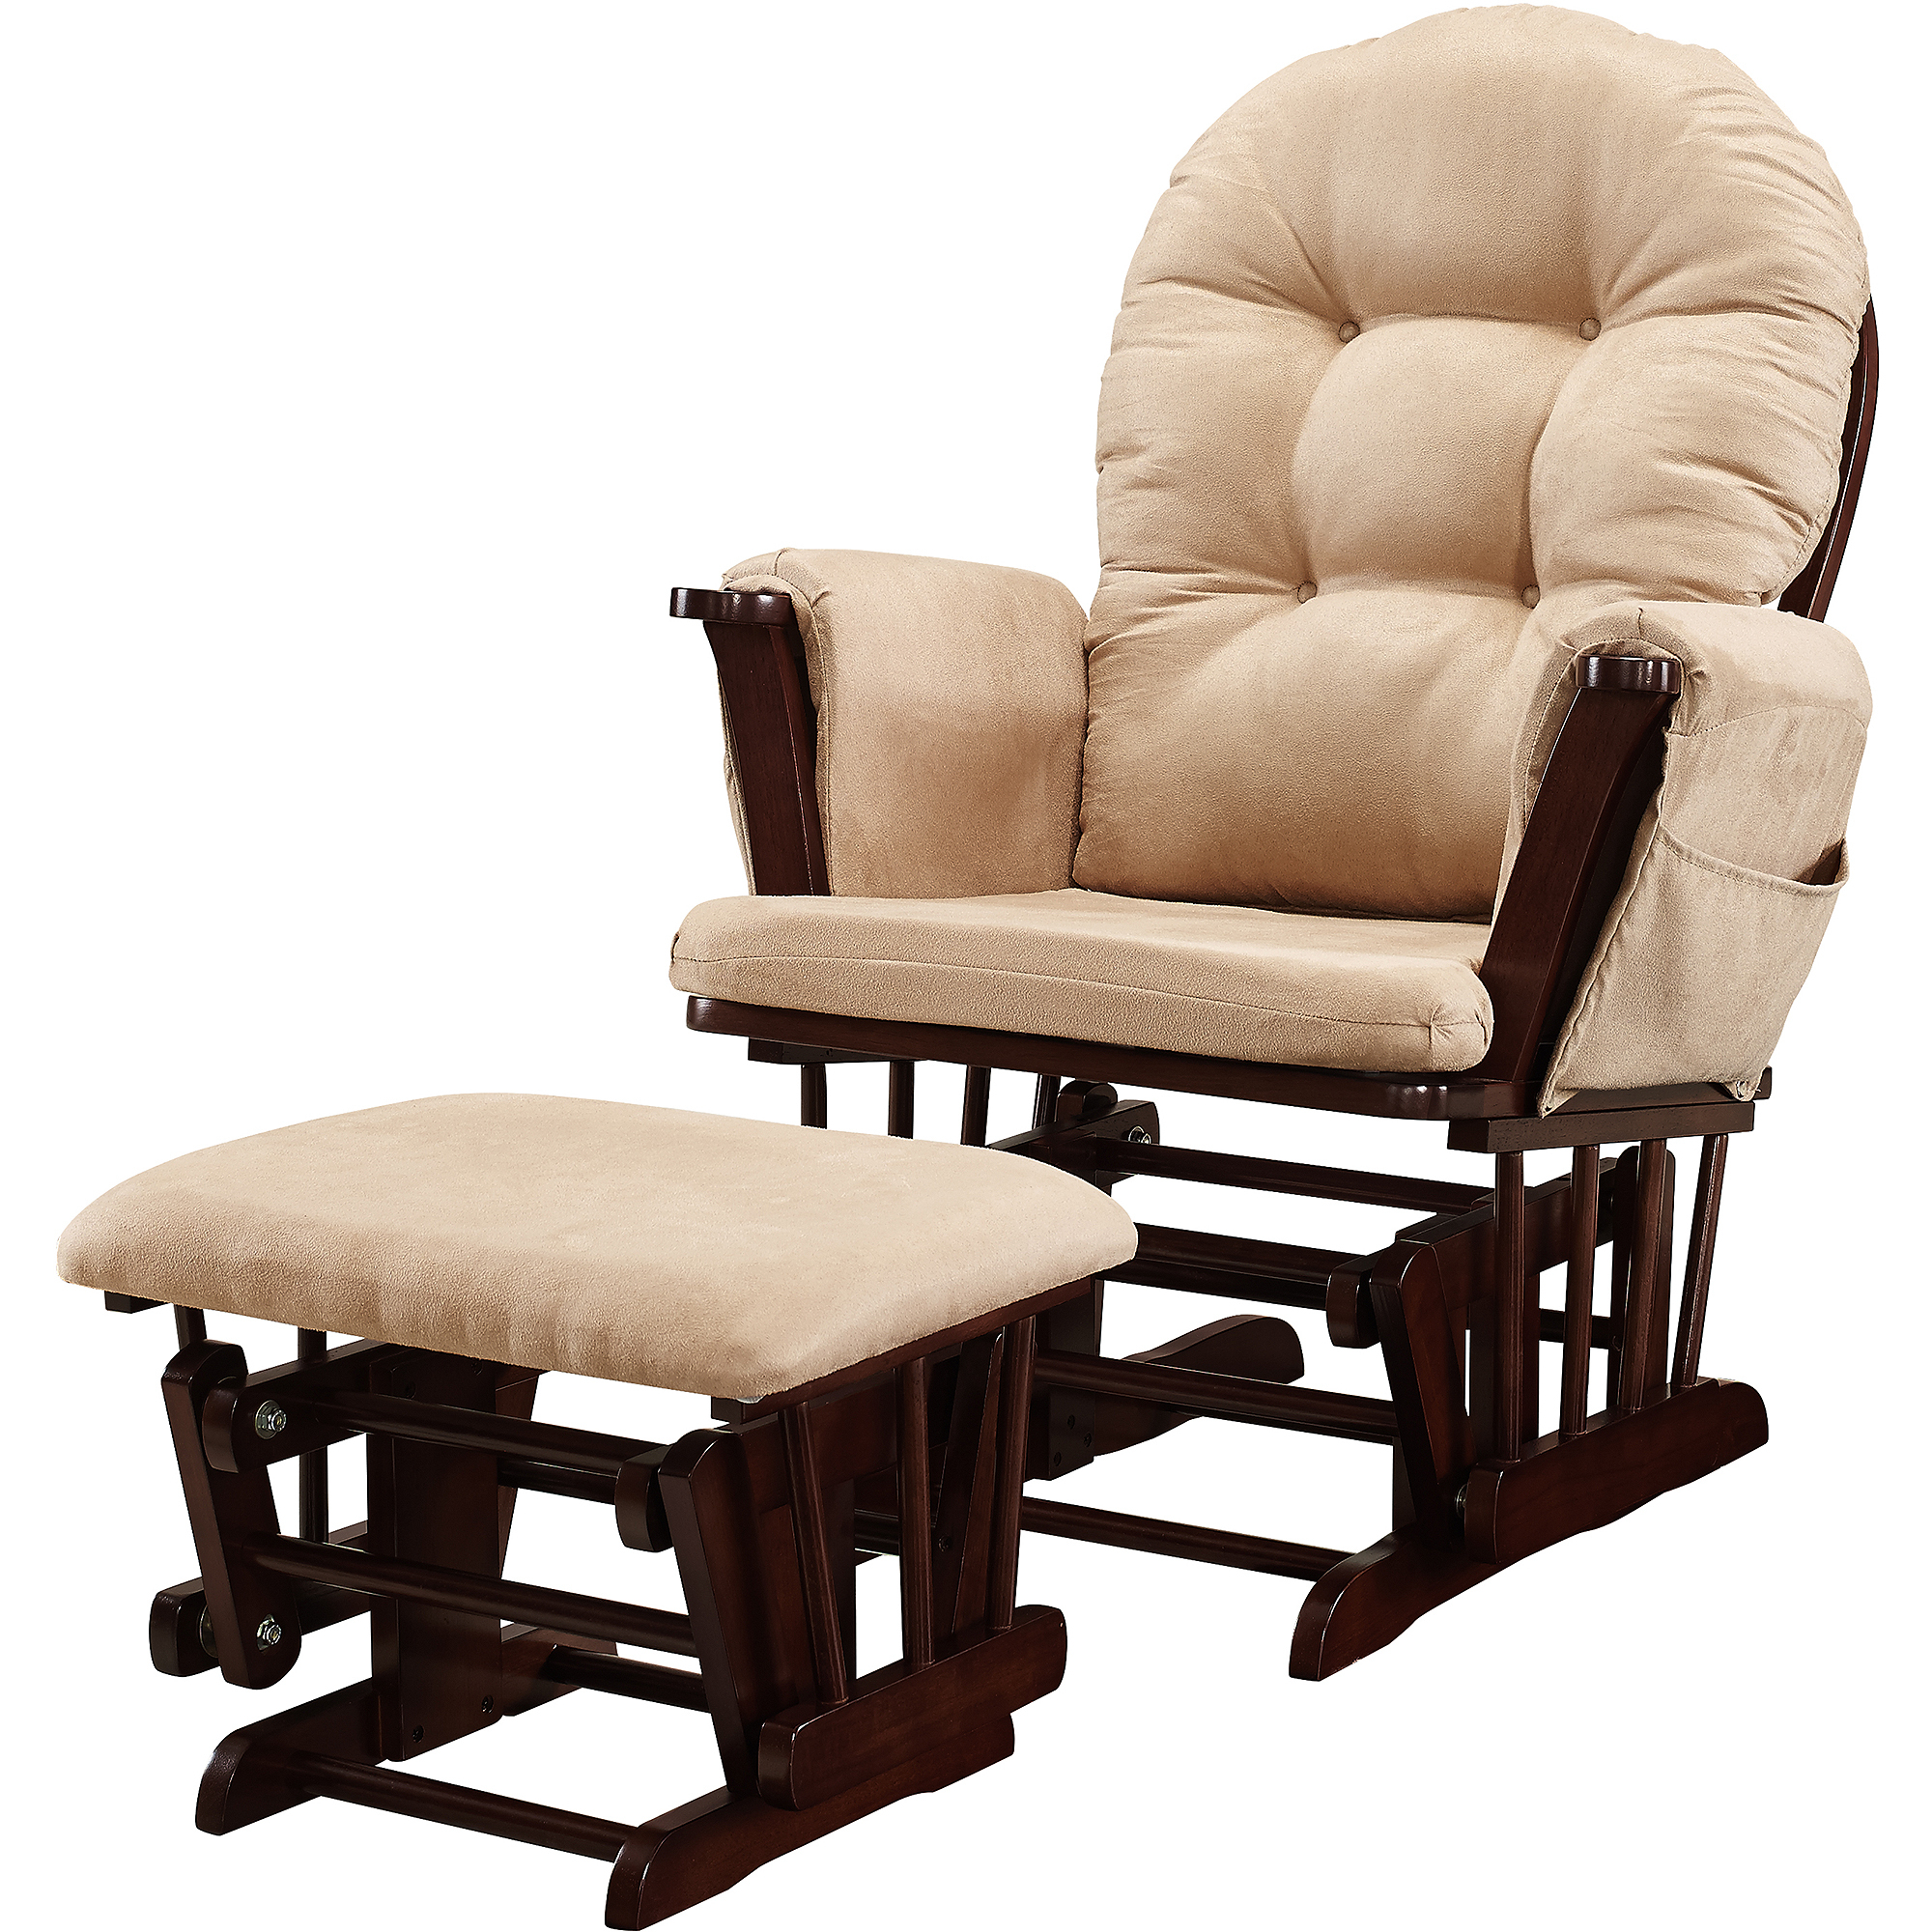 Current Baby Relax Abby Rocker Gray – Walmart Pertaining To Abbey Swivel Glider Recliners (Gallery 18 of 20)